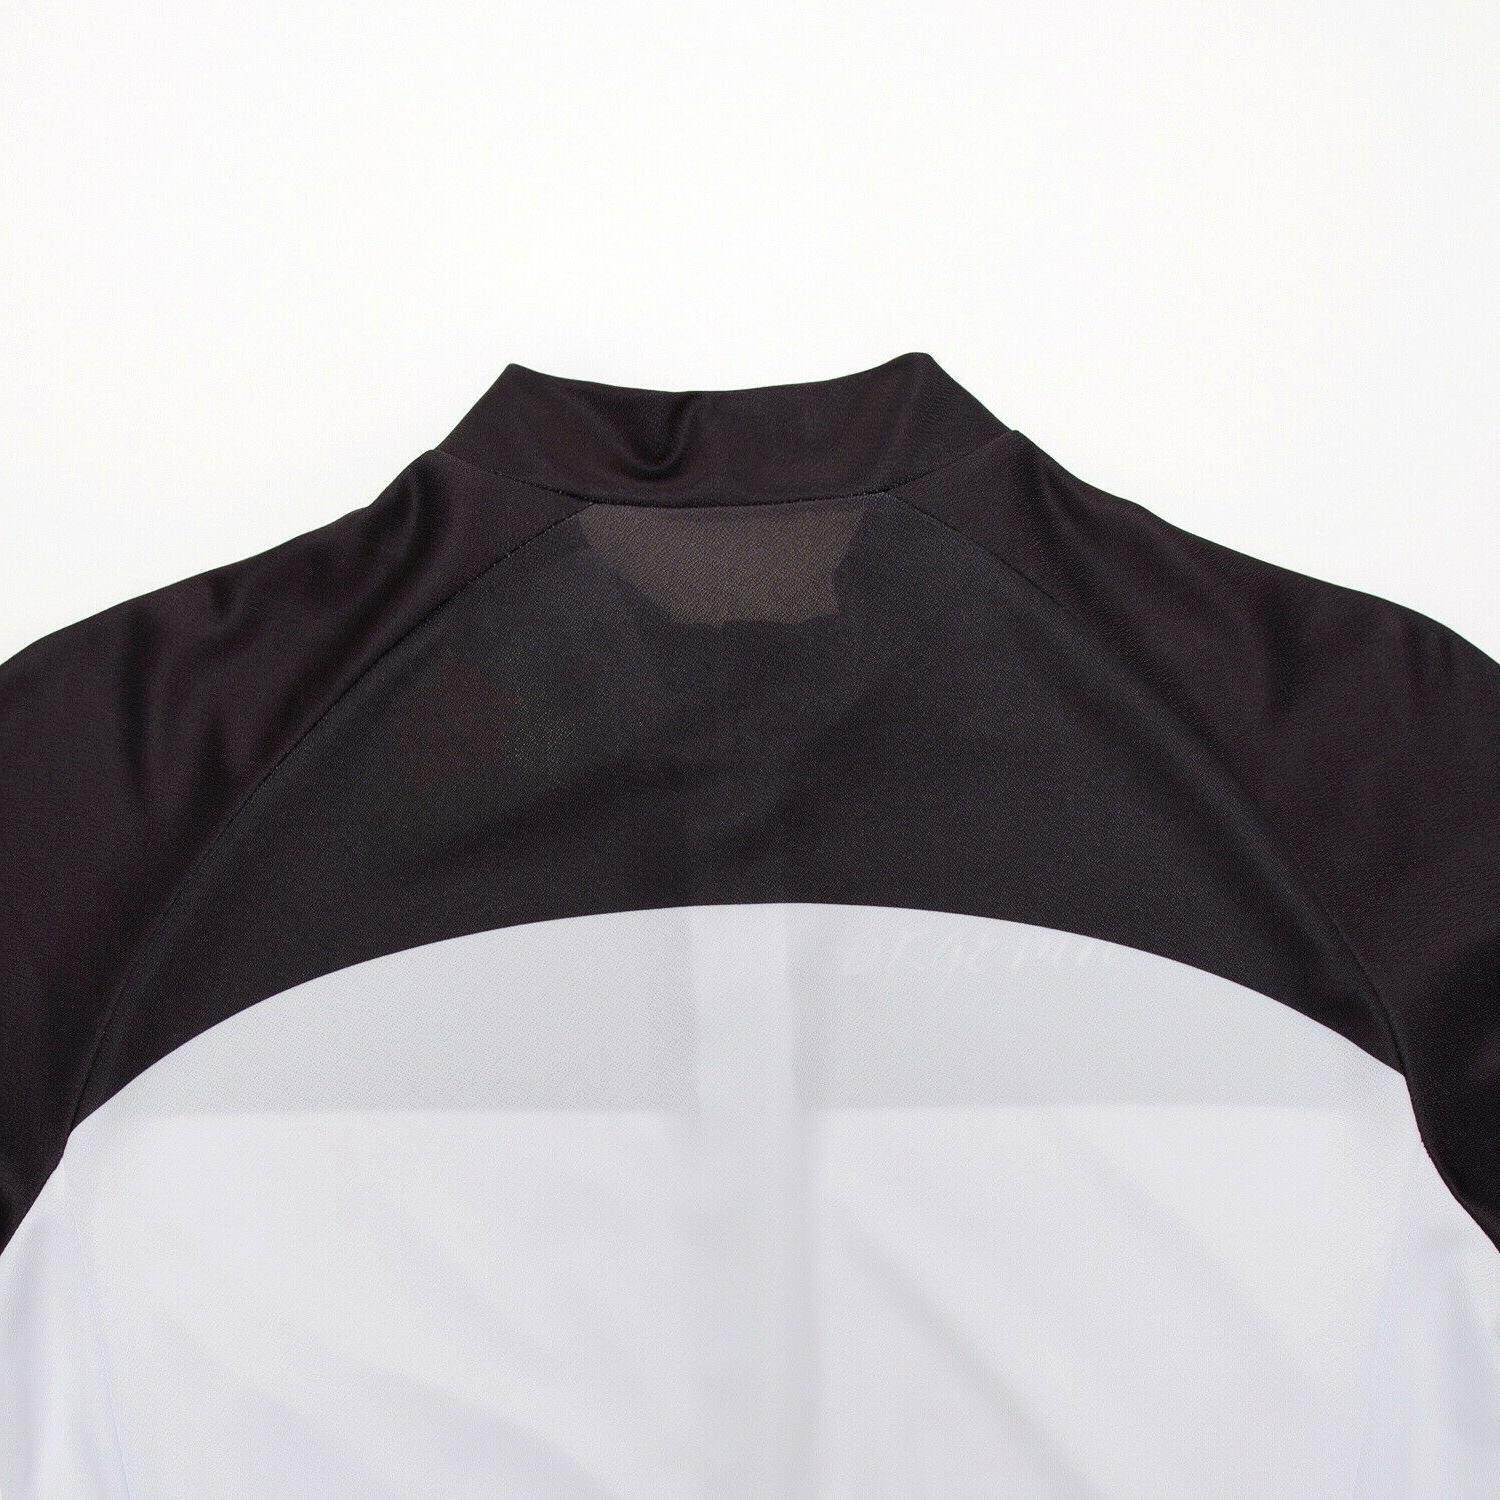 Men's Bike Jerseys Breathable Jersey Clothing Summer